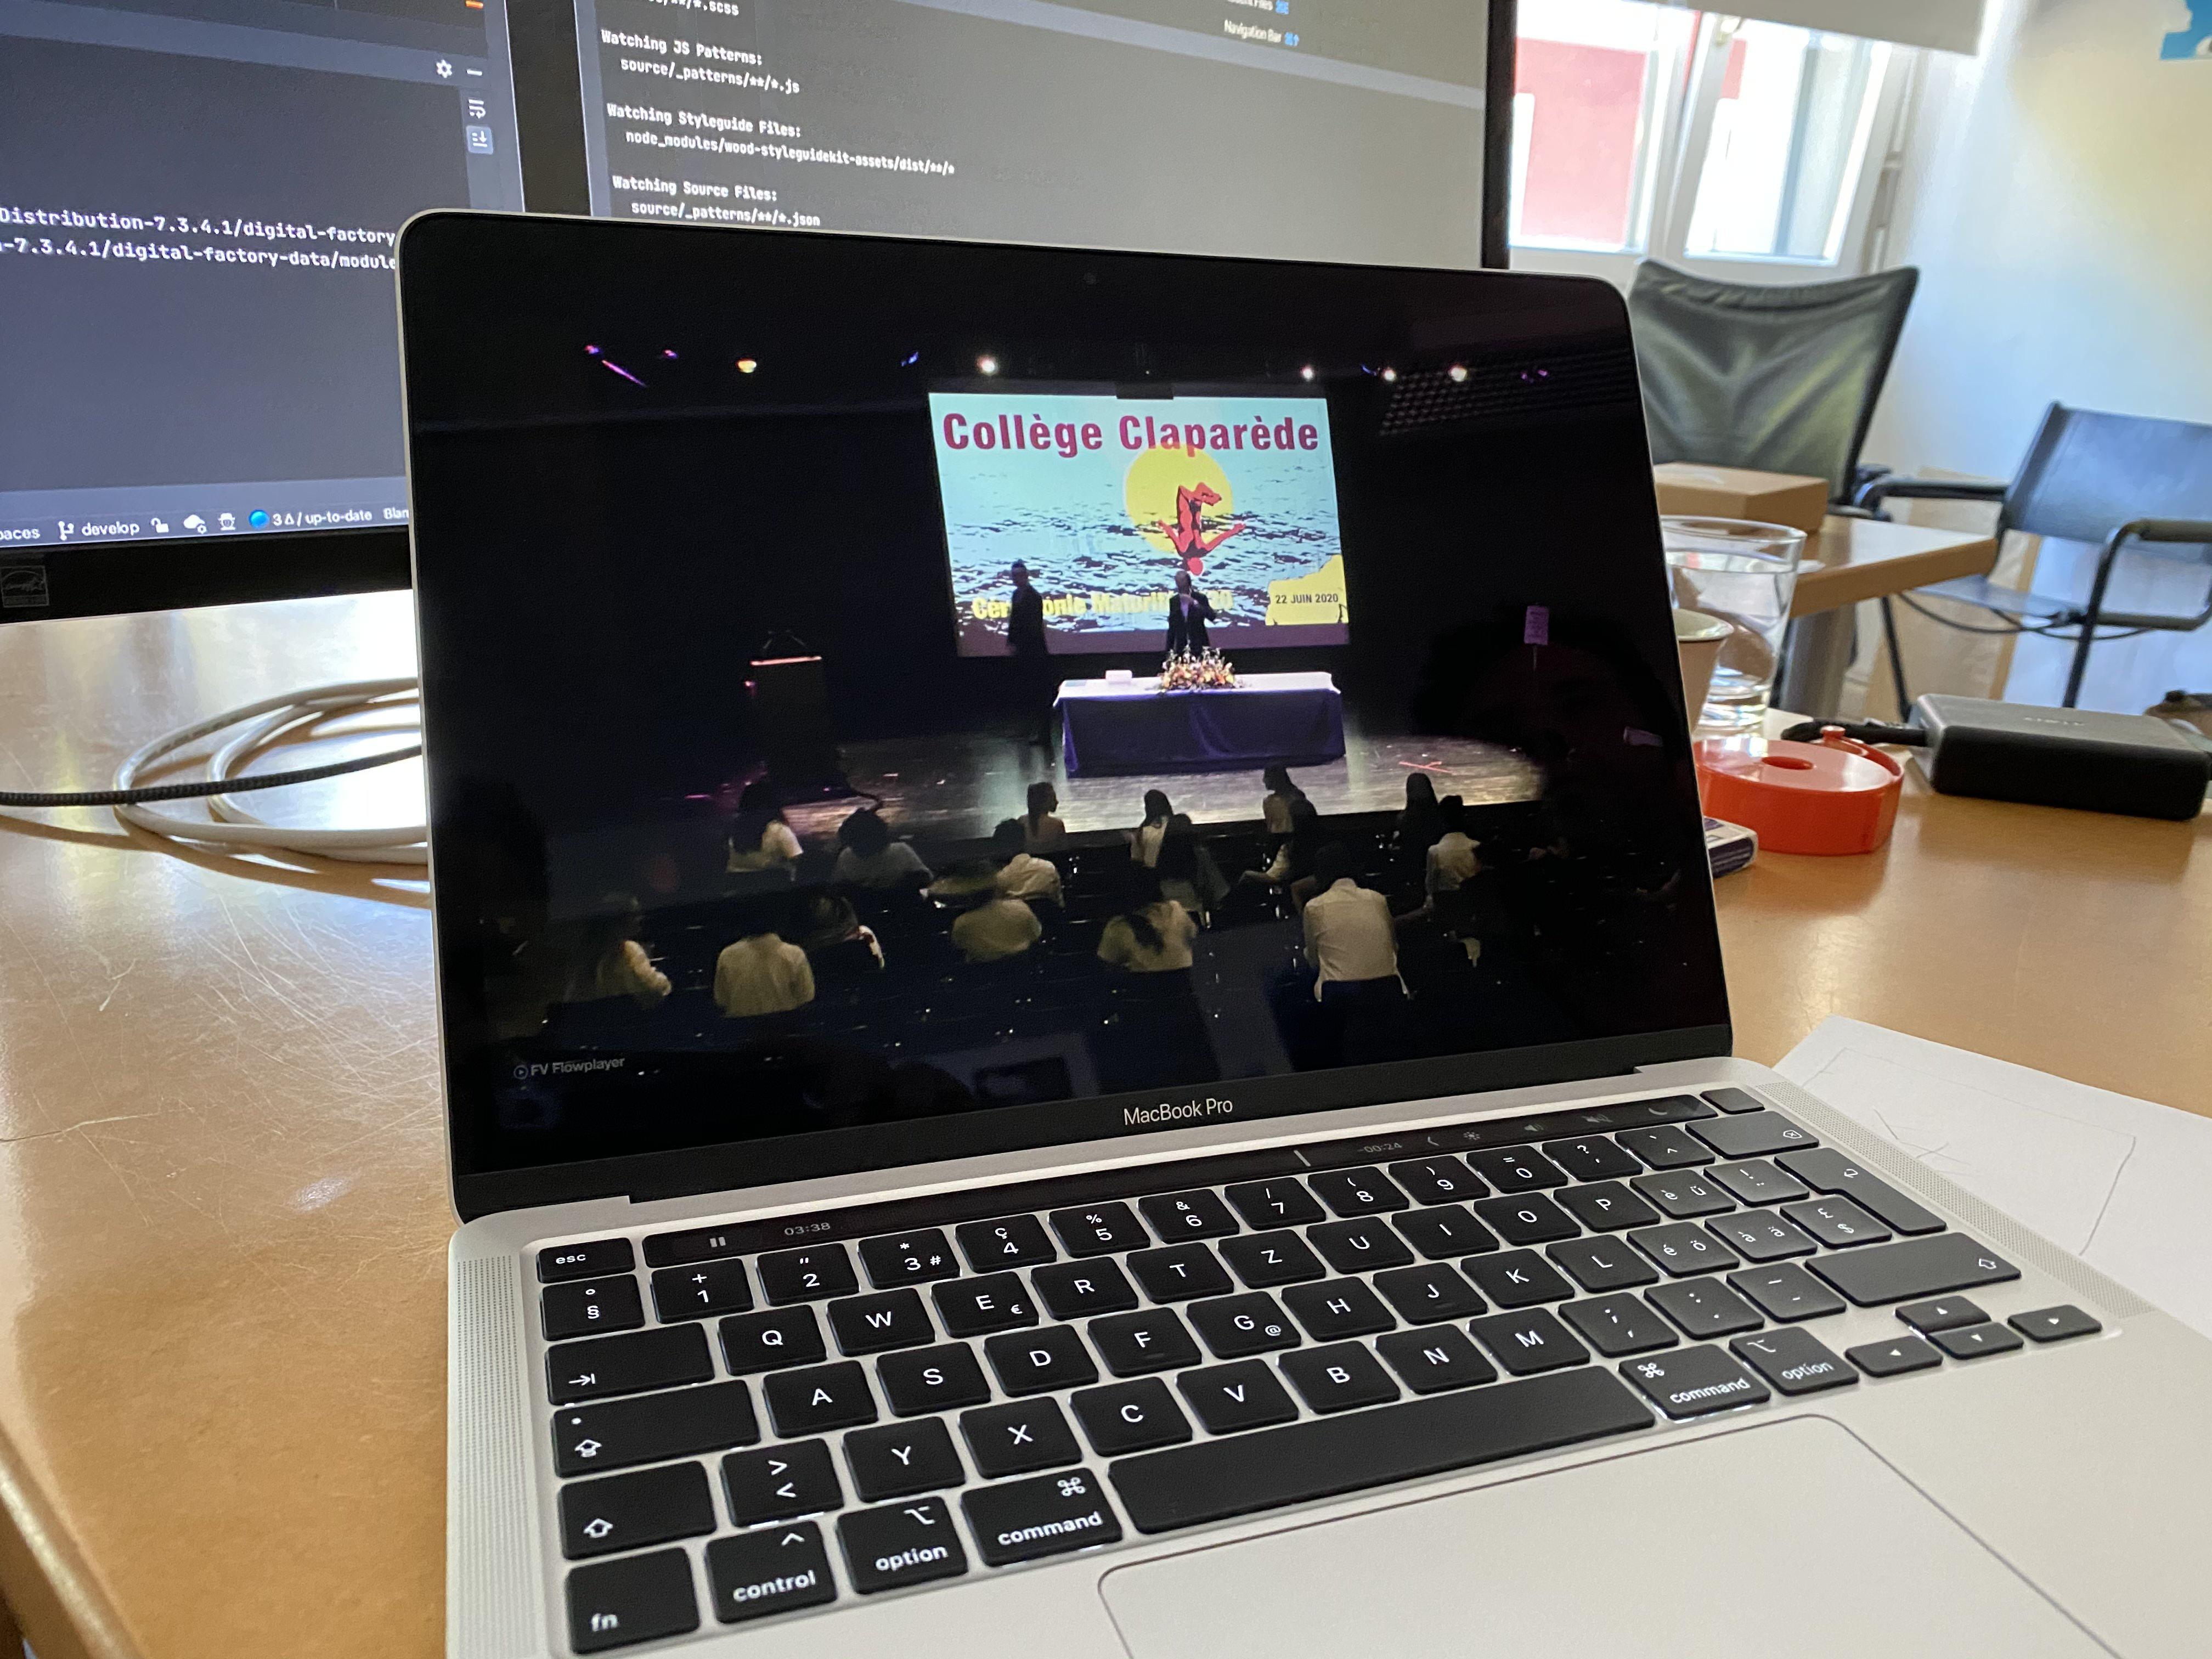 Live screencast of the ceremony on my MacBook Pro